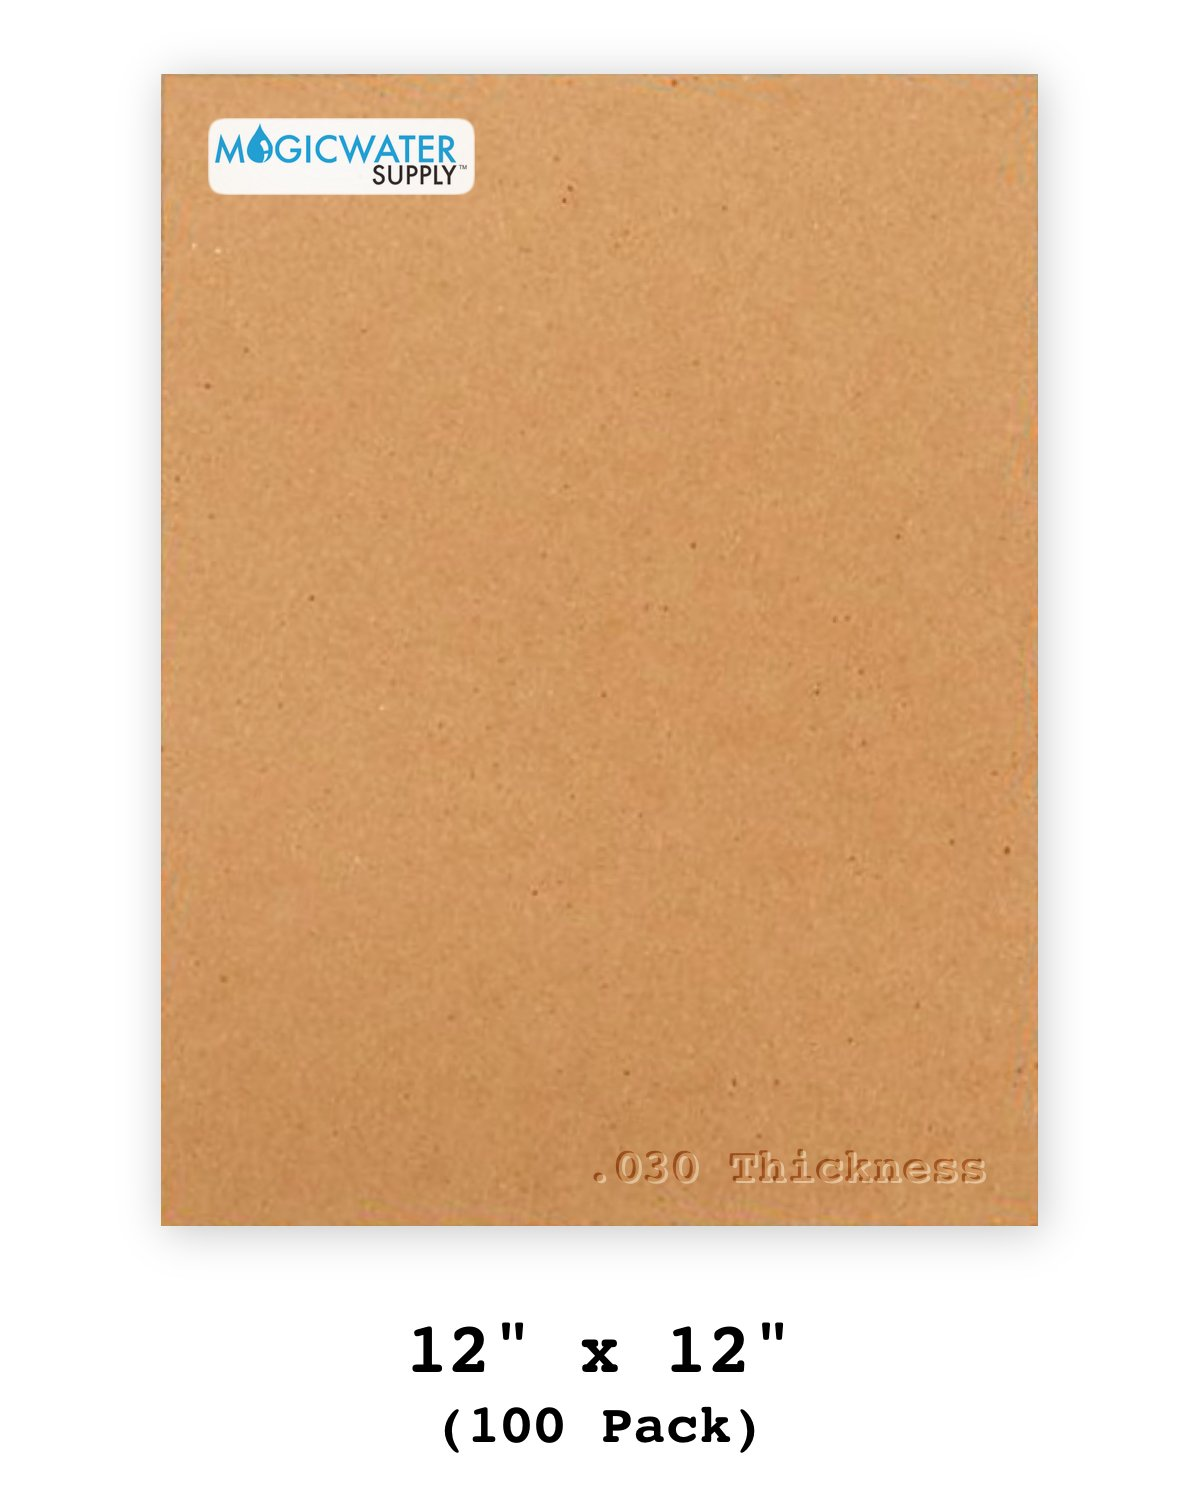 100 Chipboard Sheets 12 x 12 inch - 30pt (Point) Medium Weight Brown Kraft Cardboard for Scrapbooking & Picture Frame Backing (.030 Caliper Thick) Paper Board | MagicWater Supply